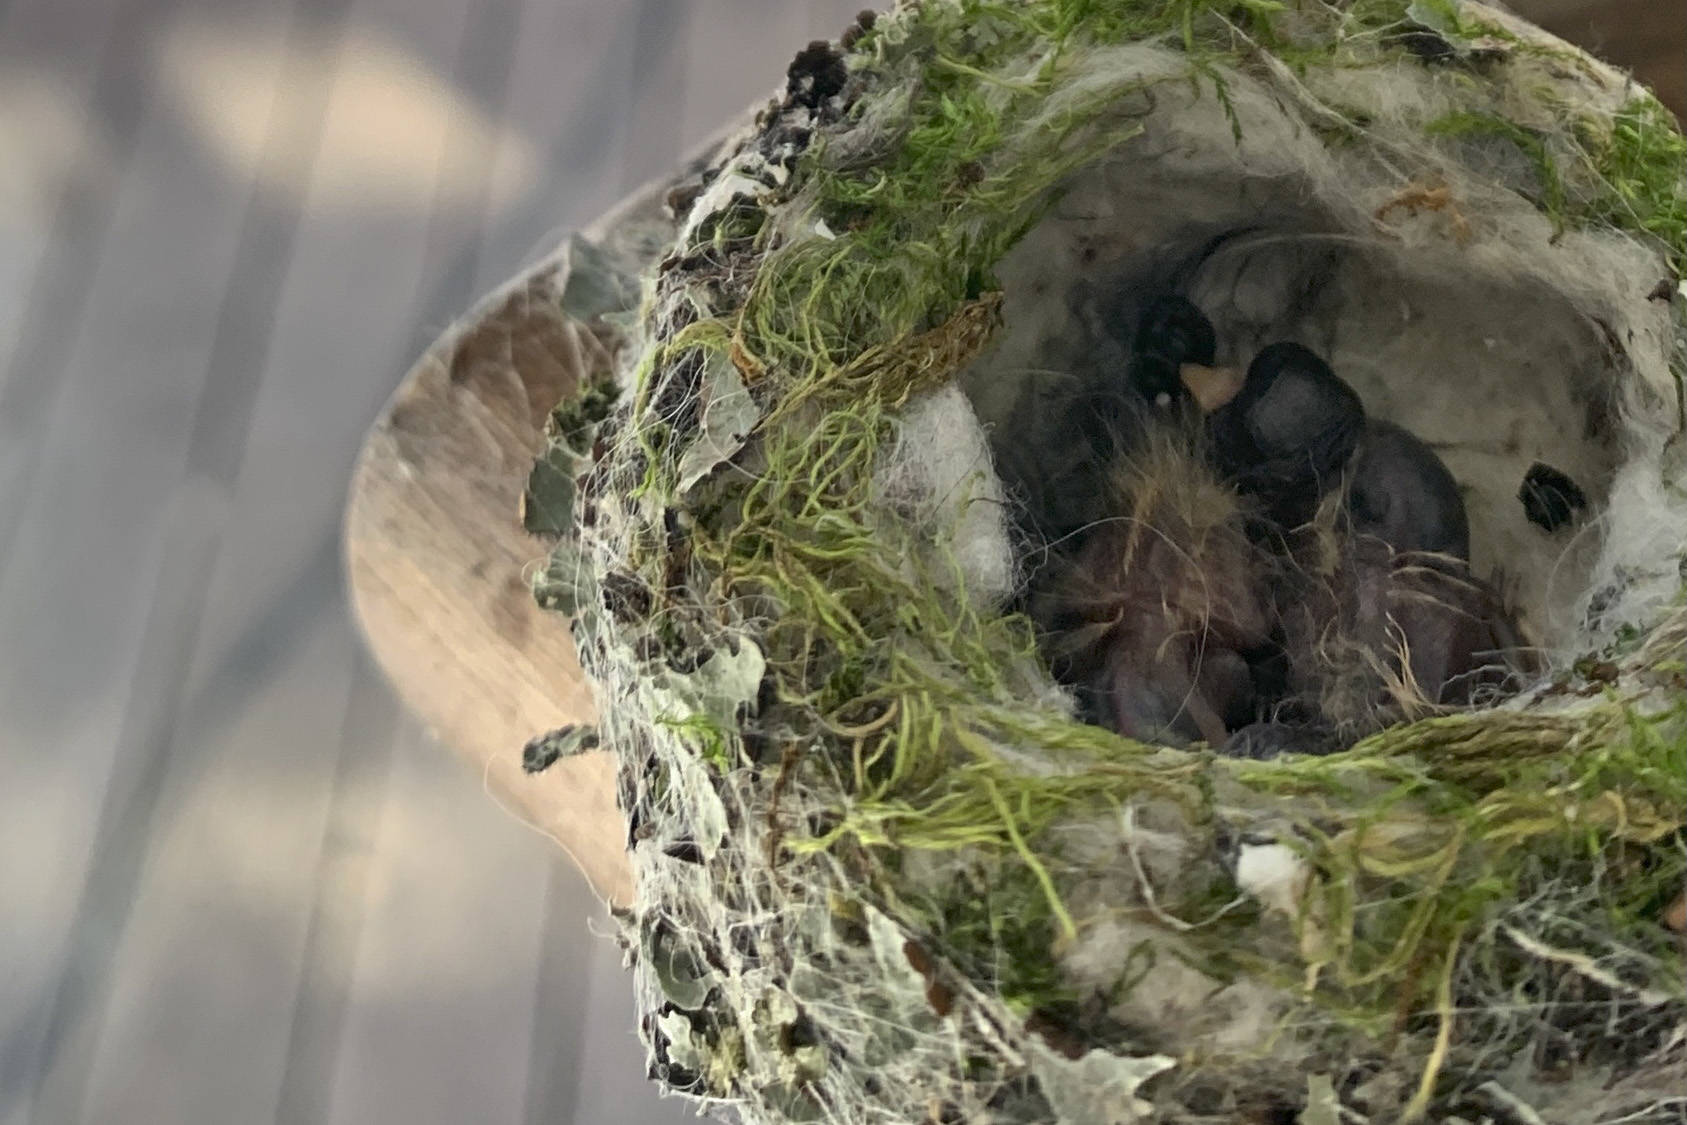 Victoria resident Ian Taylor has created a livestream of a mother hummingbird and her two chicks in hopes that it brings people a bit of joy. (Courtesy of Ian Taylor)